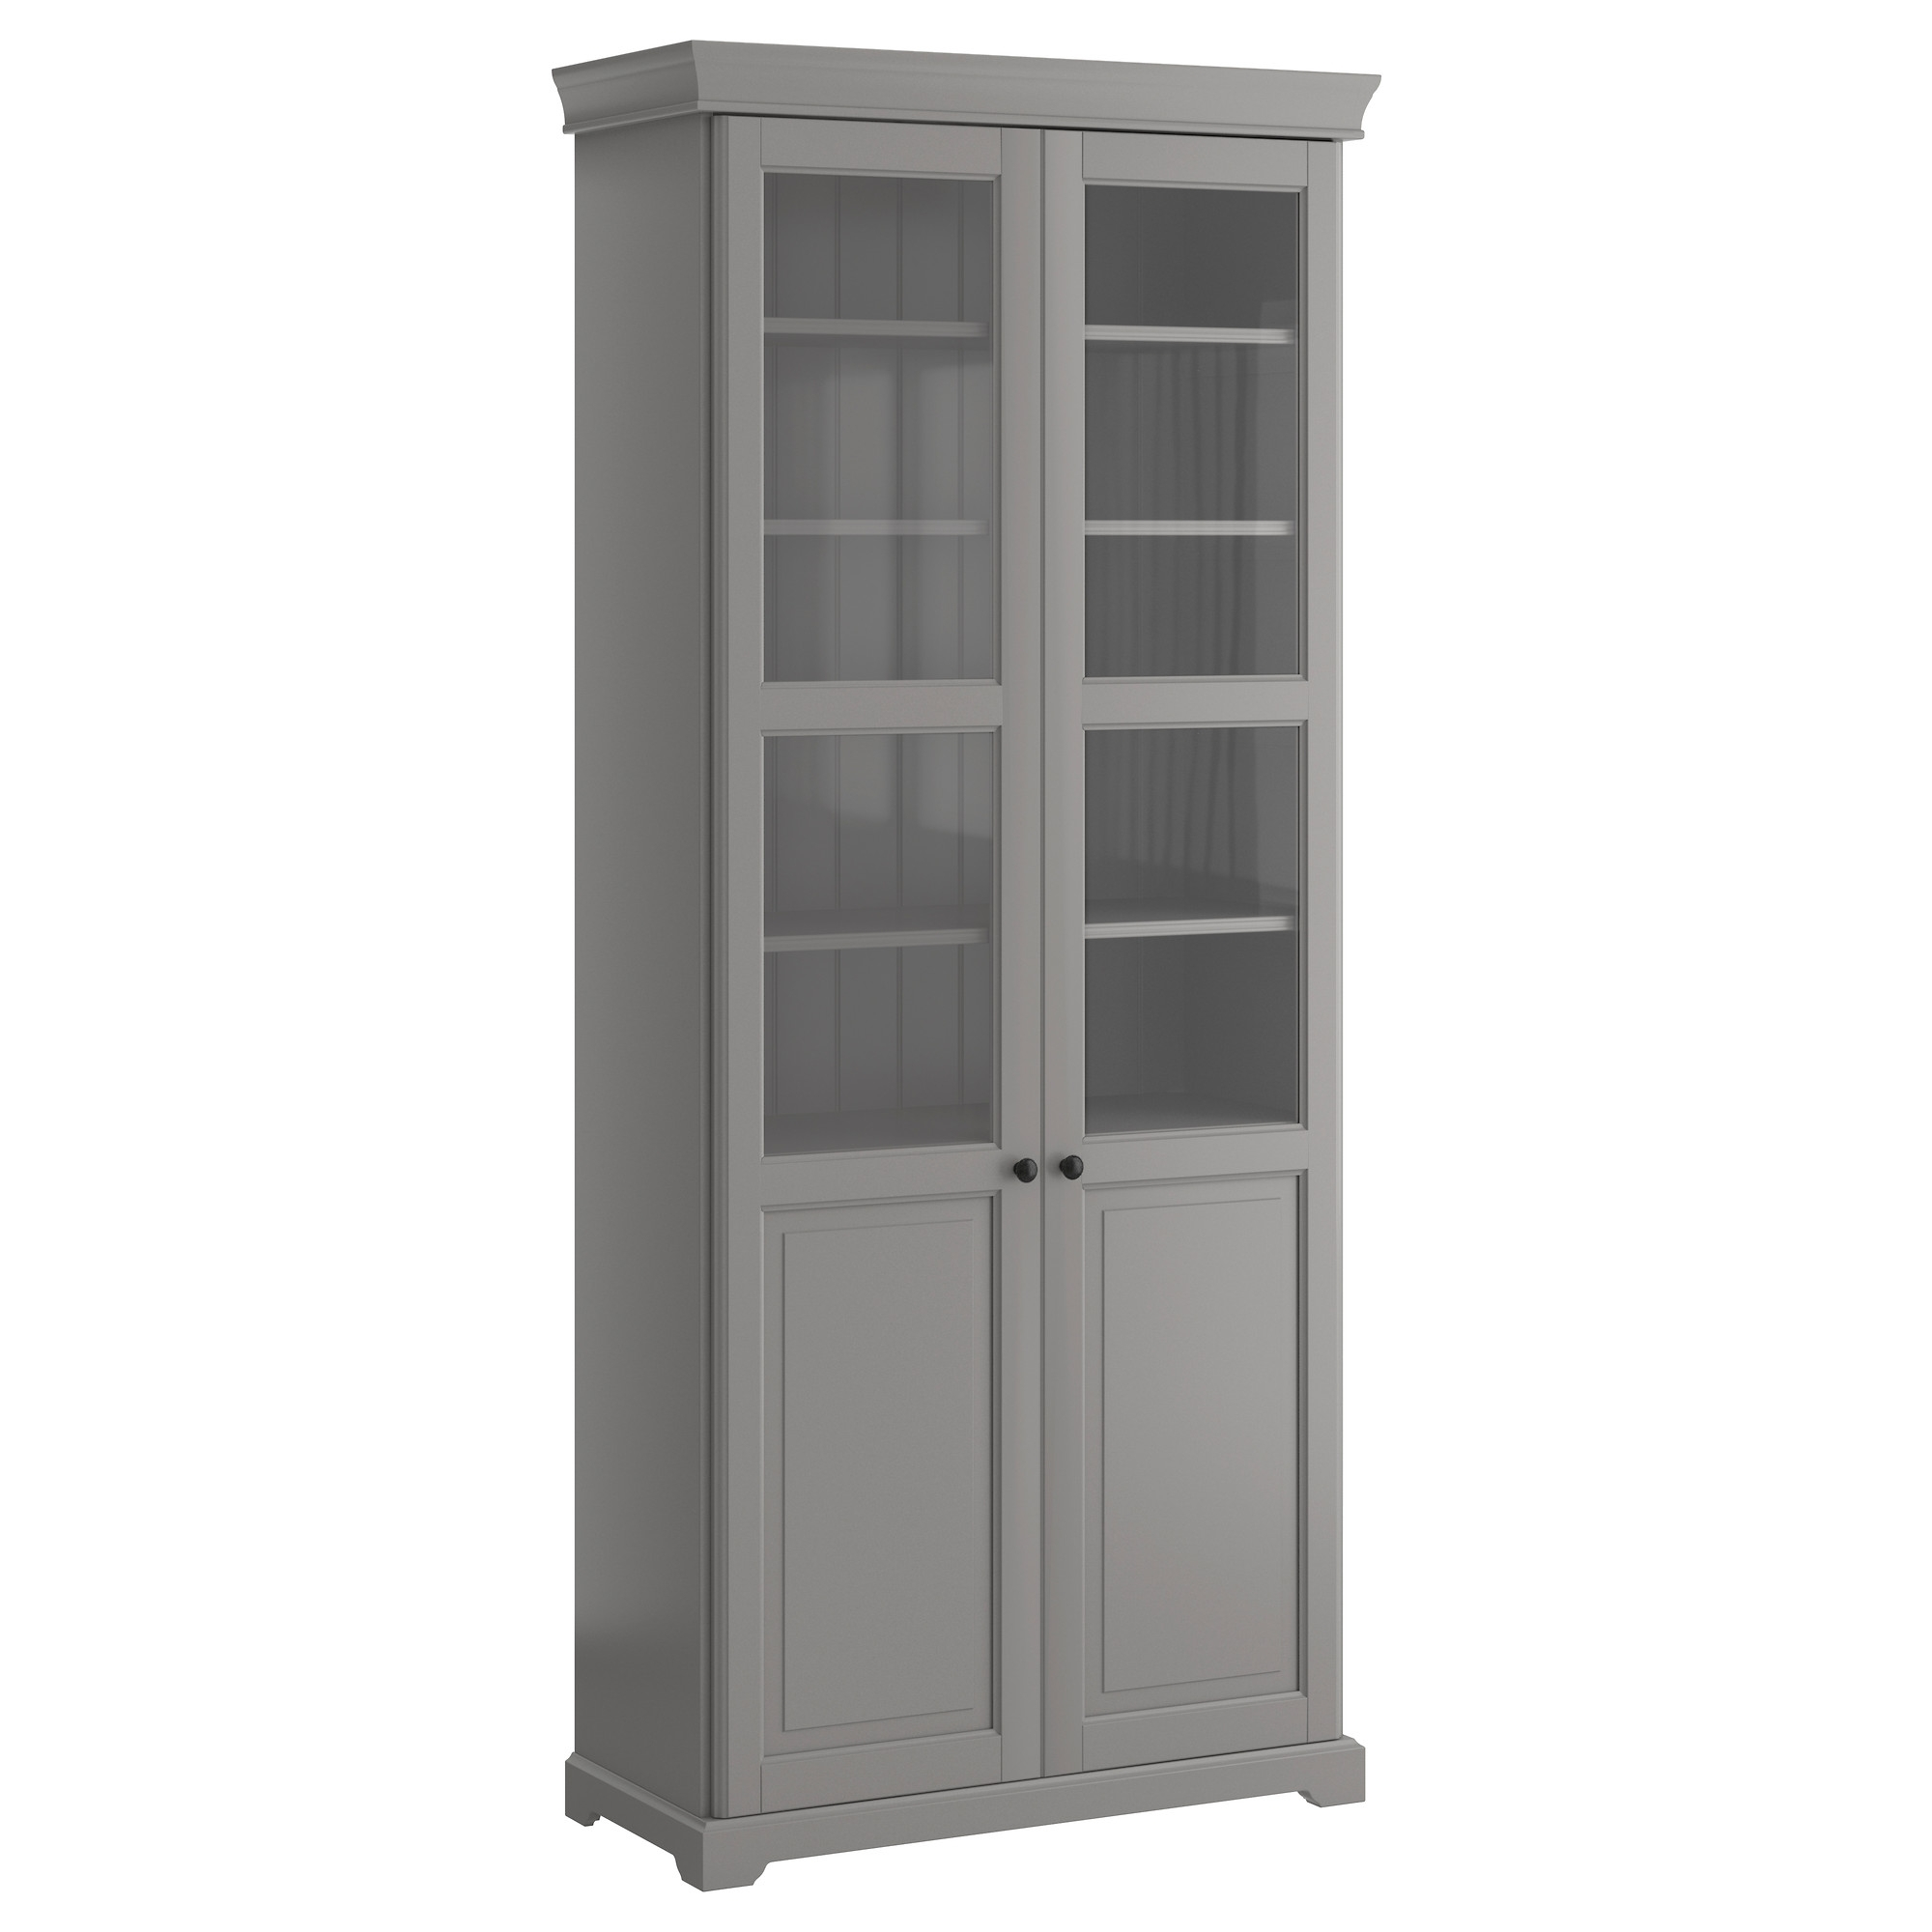 Bookcases With Glass Doors Inside Widely Used Liatorp Bookcase With Glass Doors – Gray – Ikea (View 4 of 15)